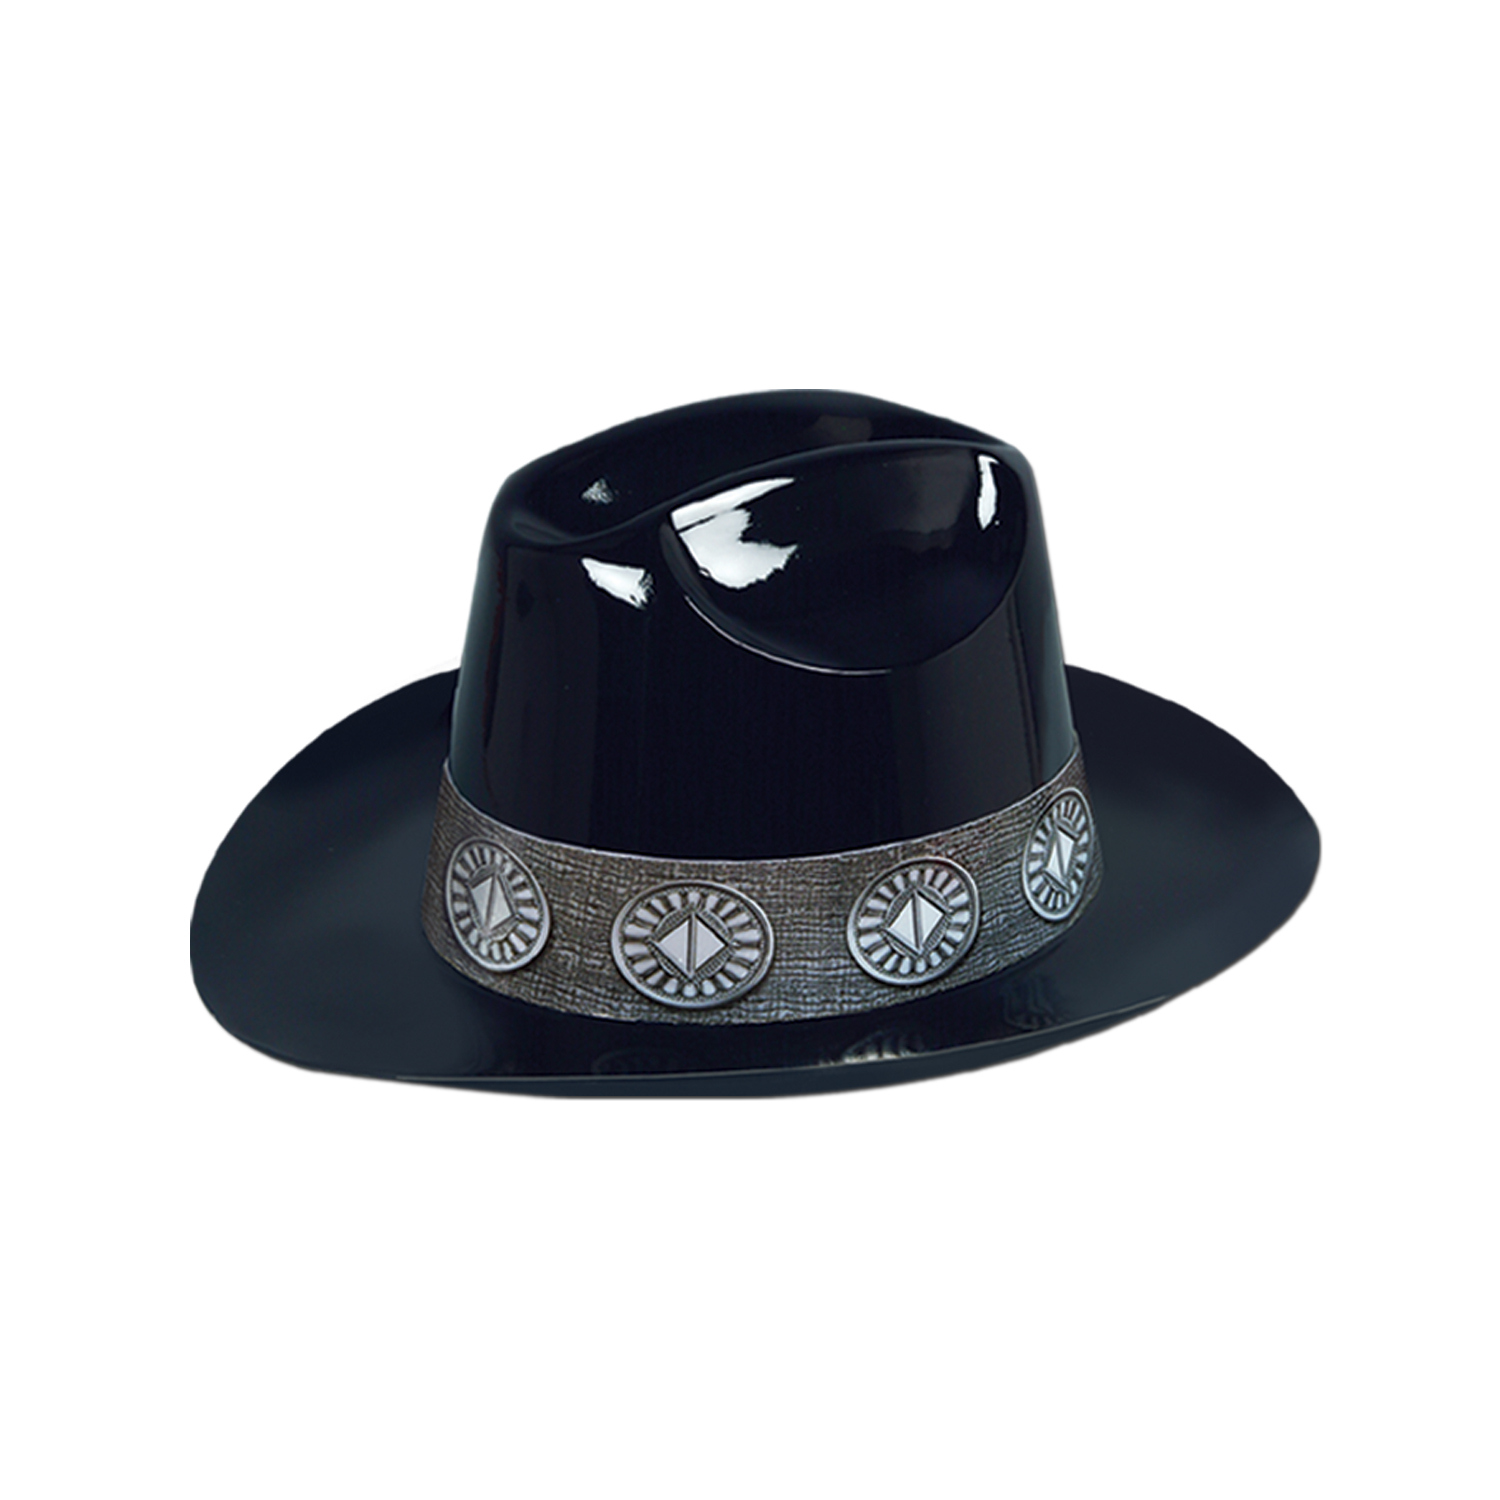 Black plastic cowboy hat with decorative grey cardstock band.